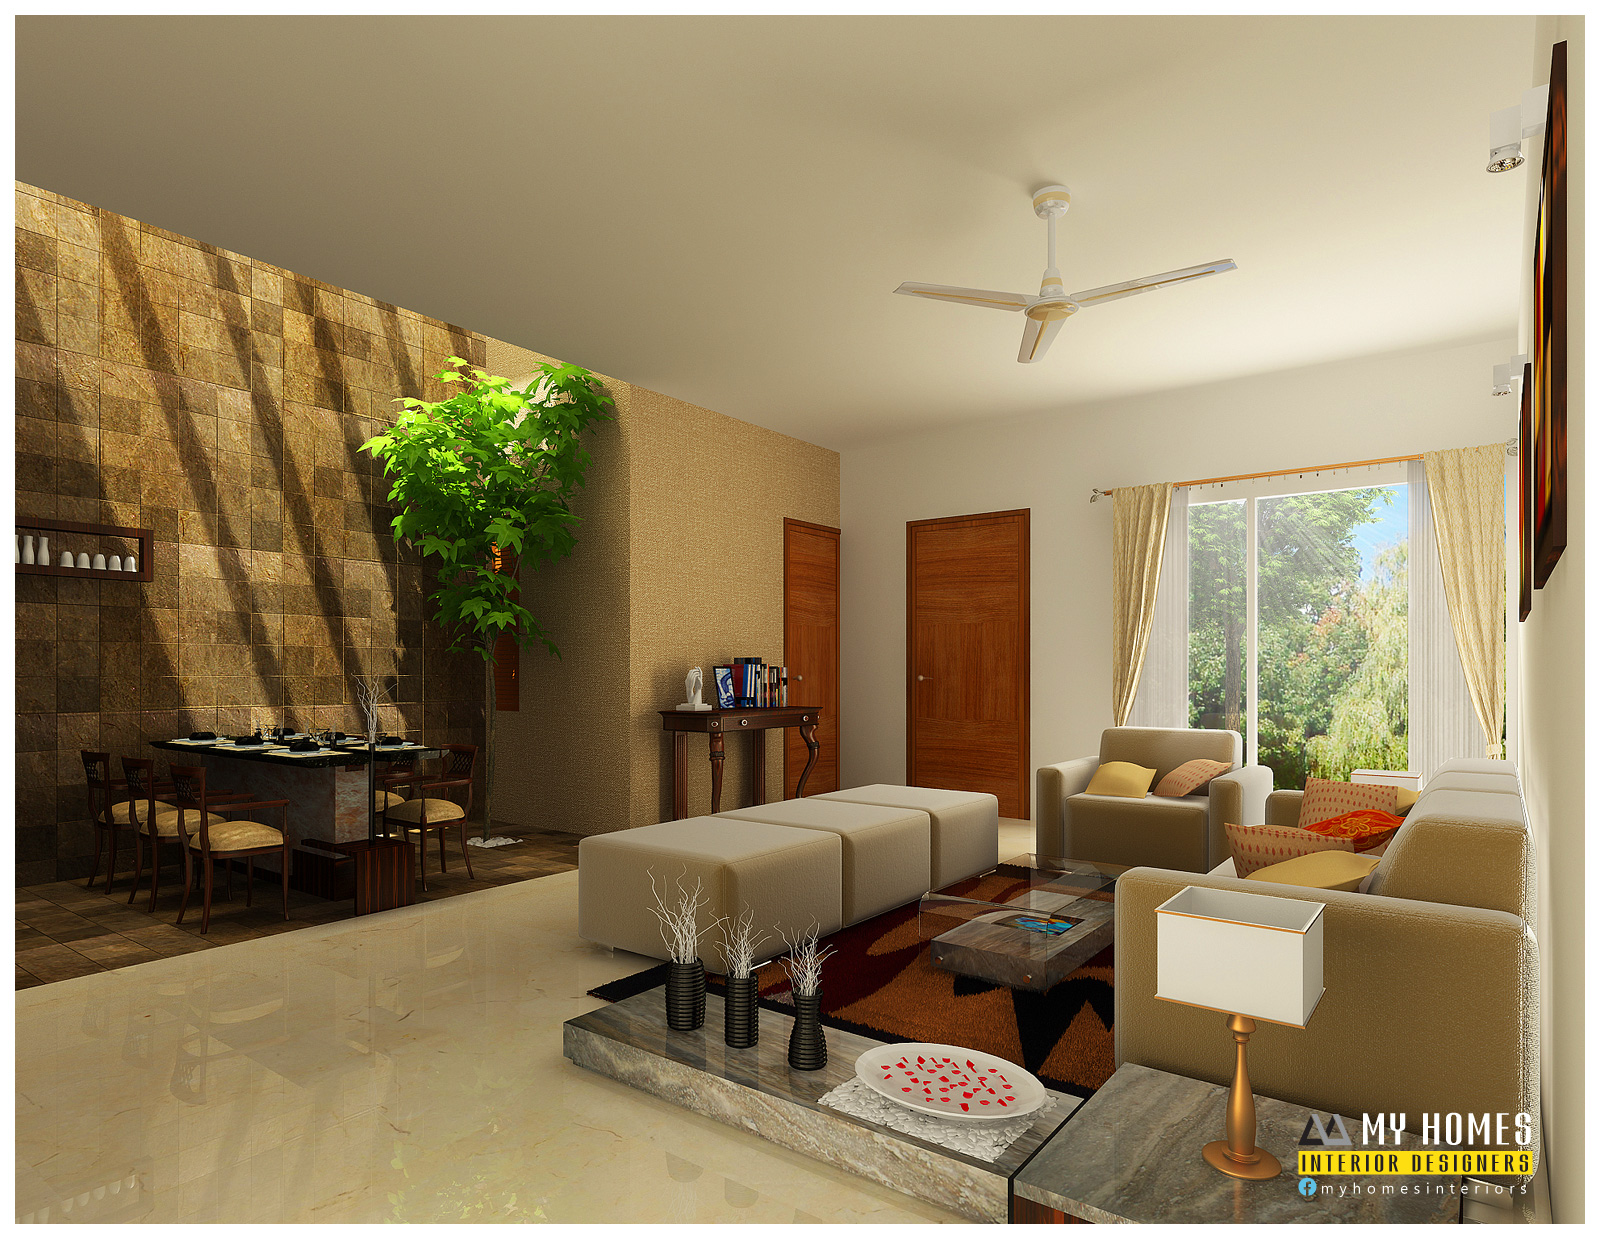 Kerala interior design ideas from designing company thrissur for House interior design pictures